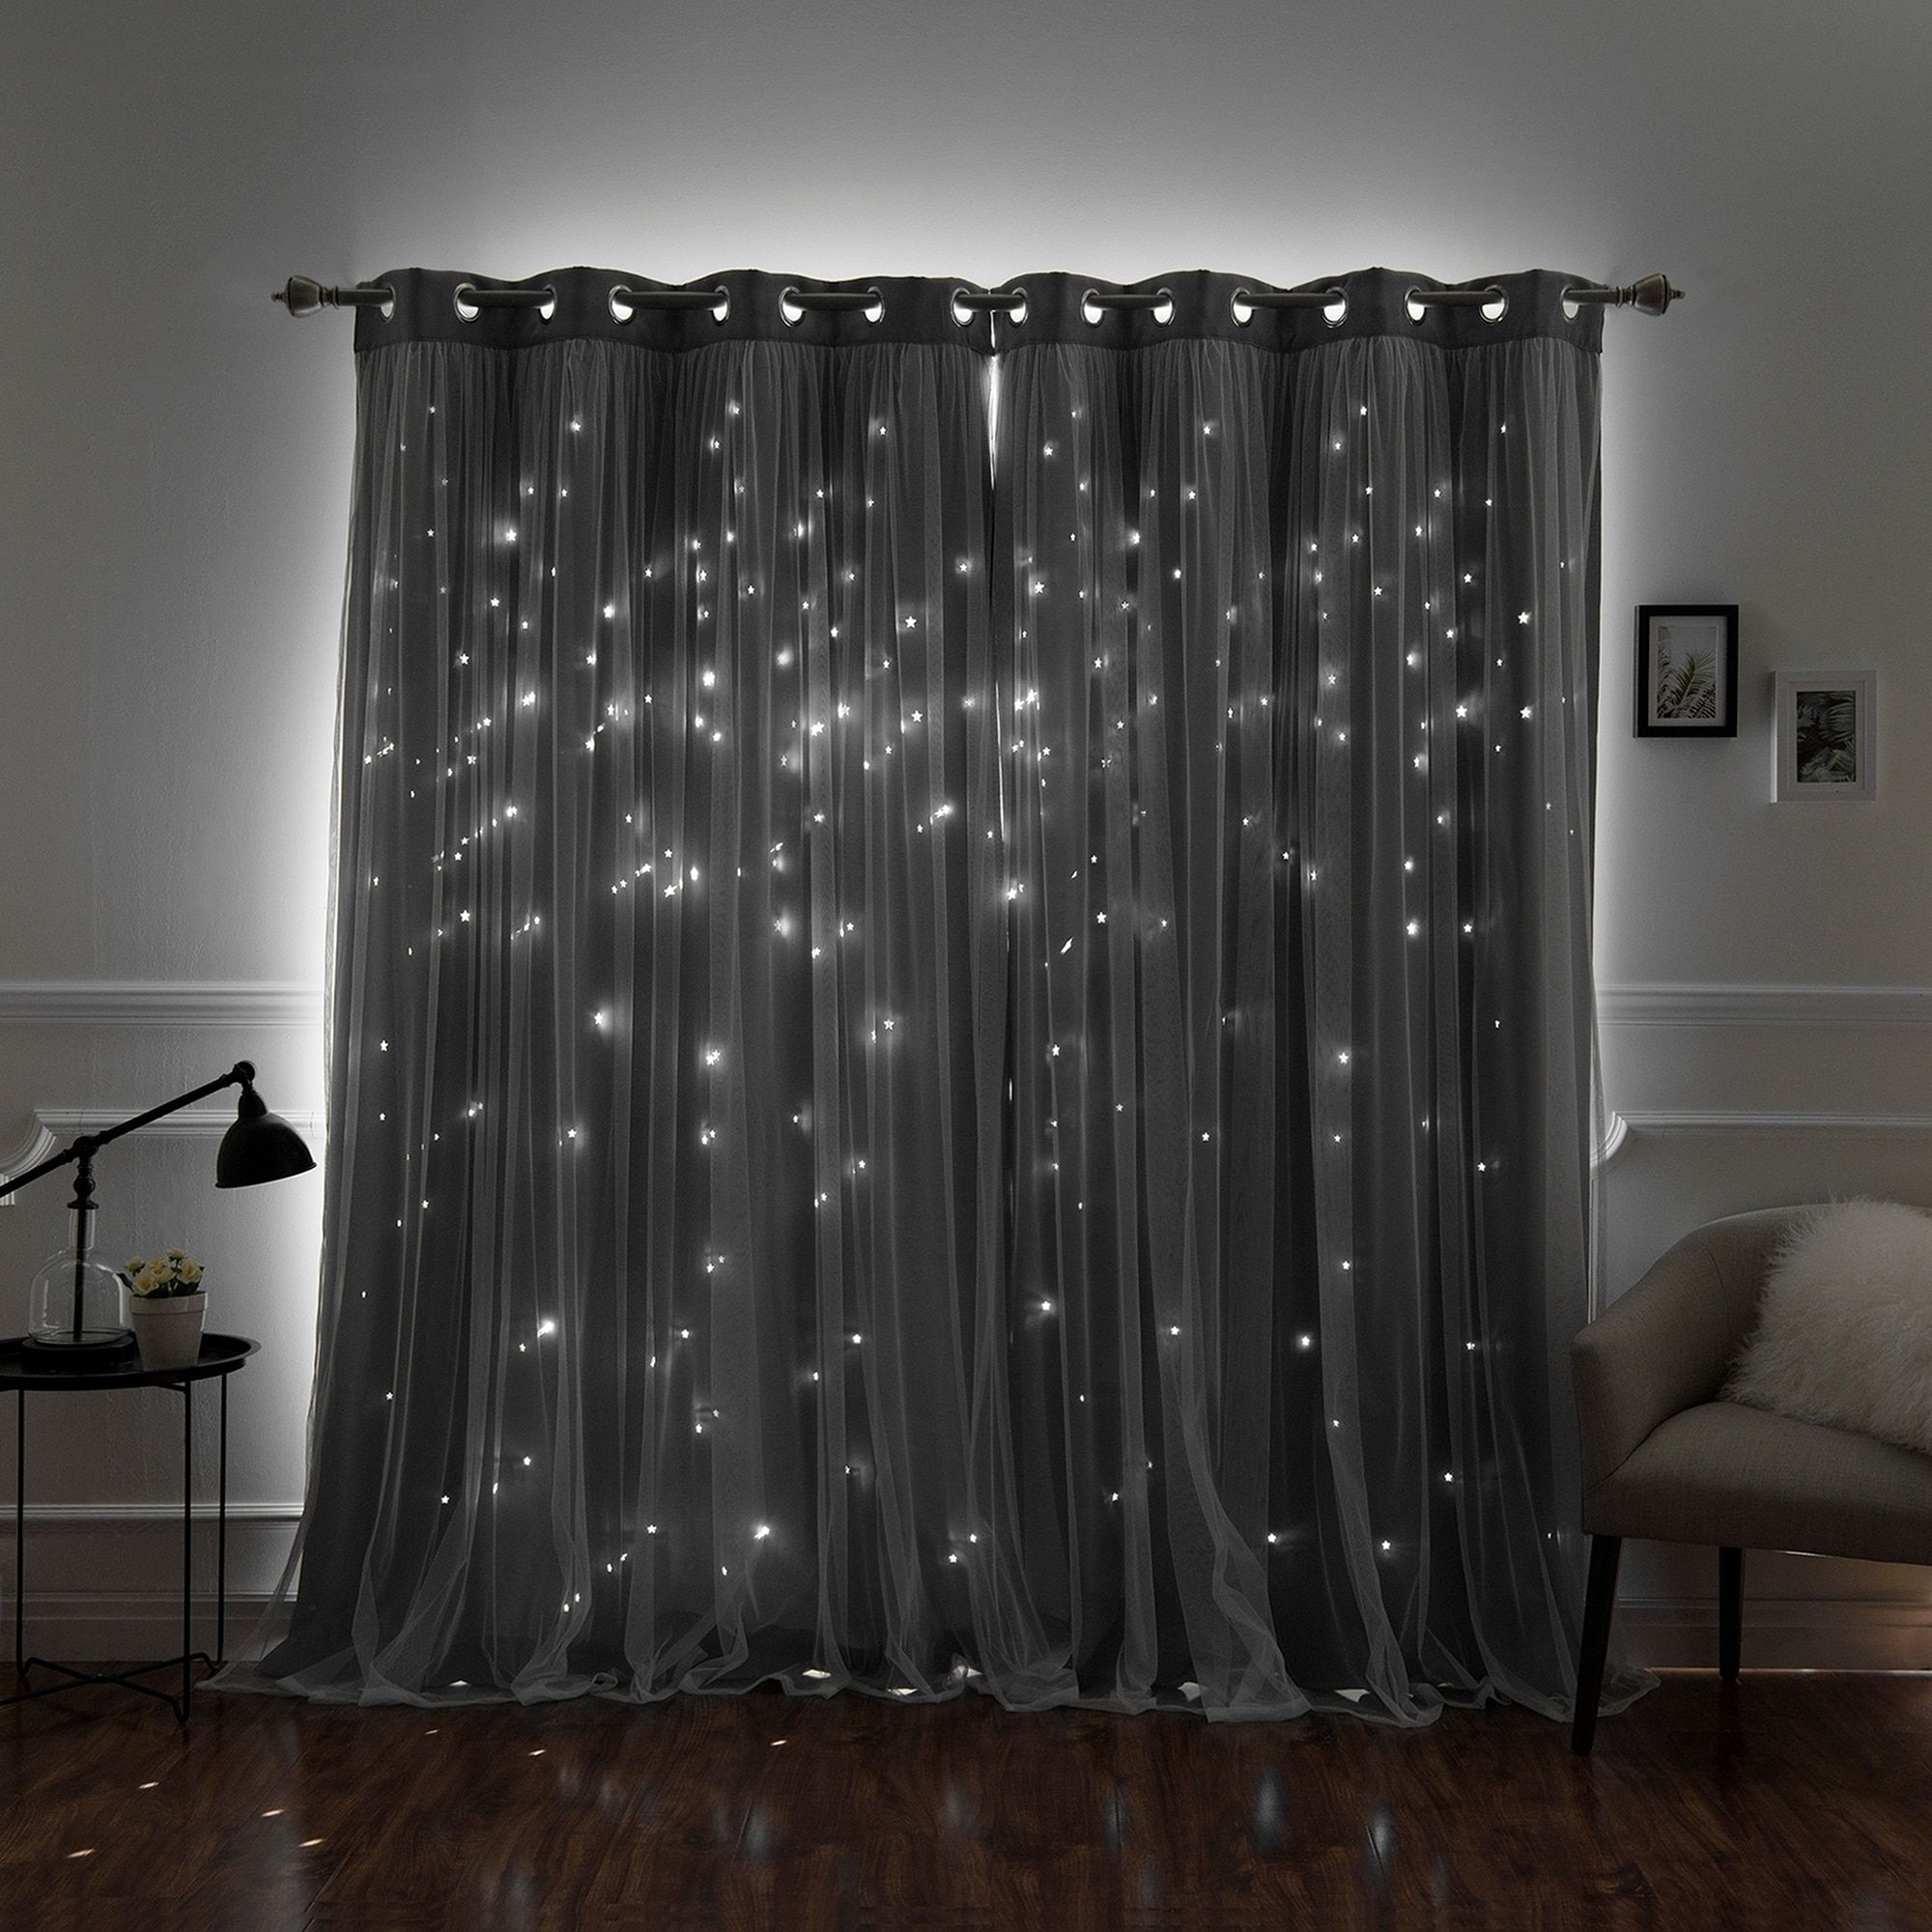 Overstock Com Online Shopping Bedding Furniture Electronics Jewelry Clothing More Cool Curtains Home Curtains Blackout Curtains